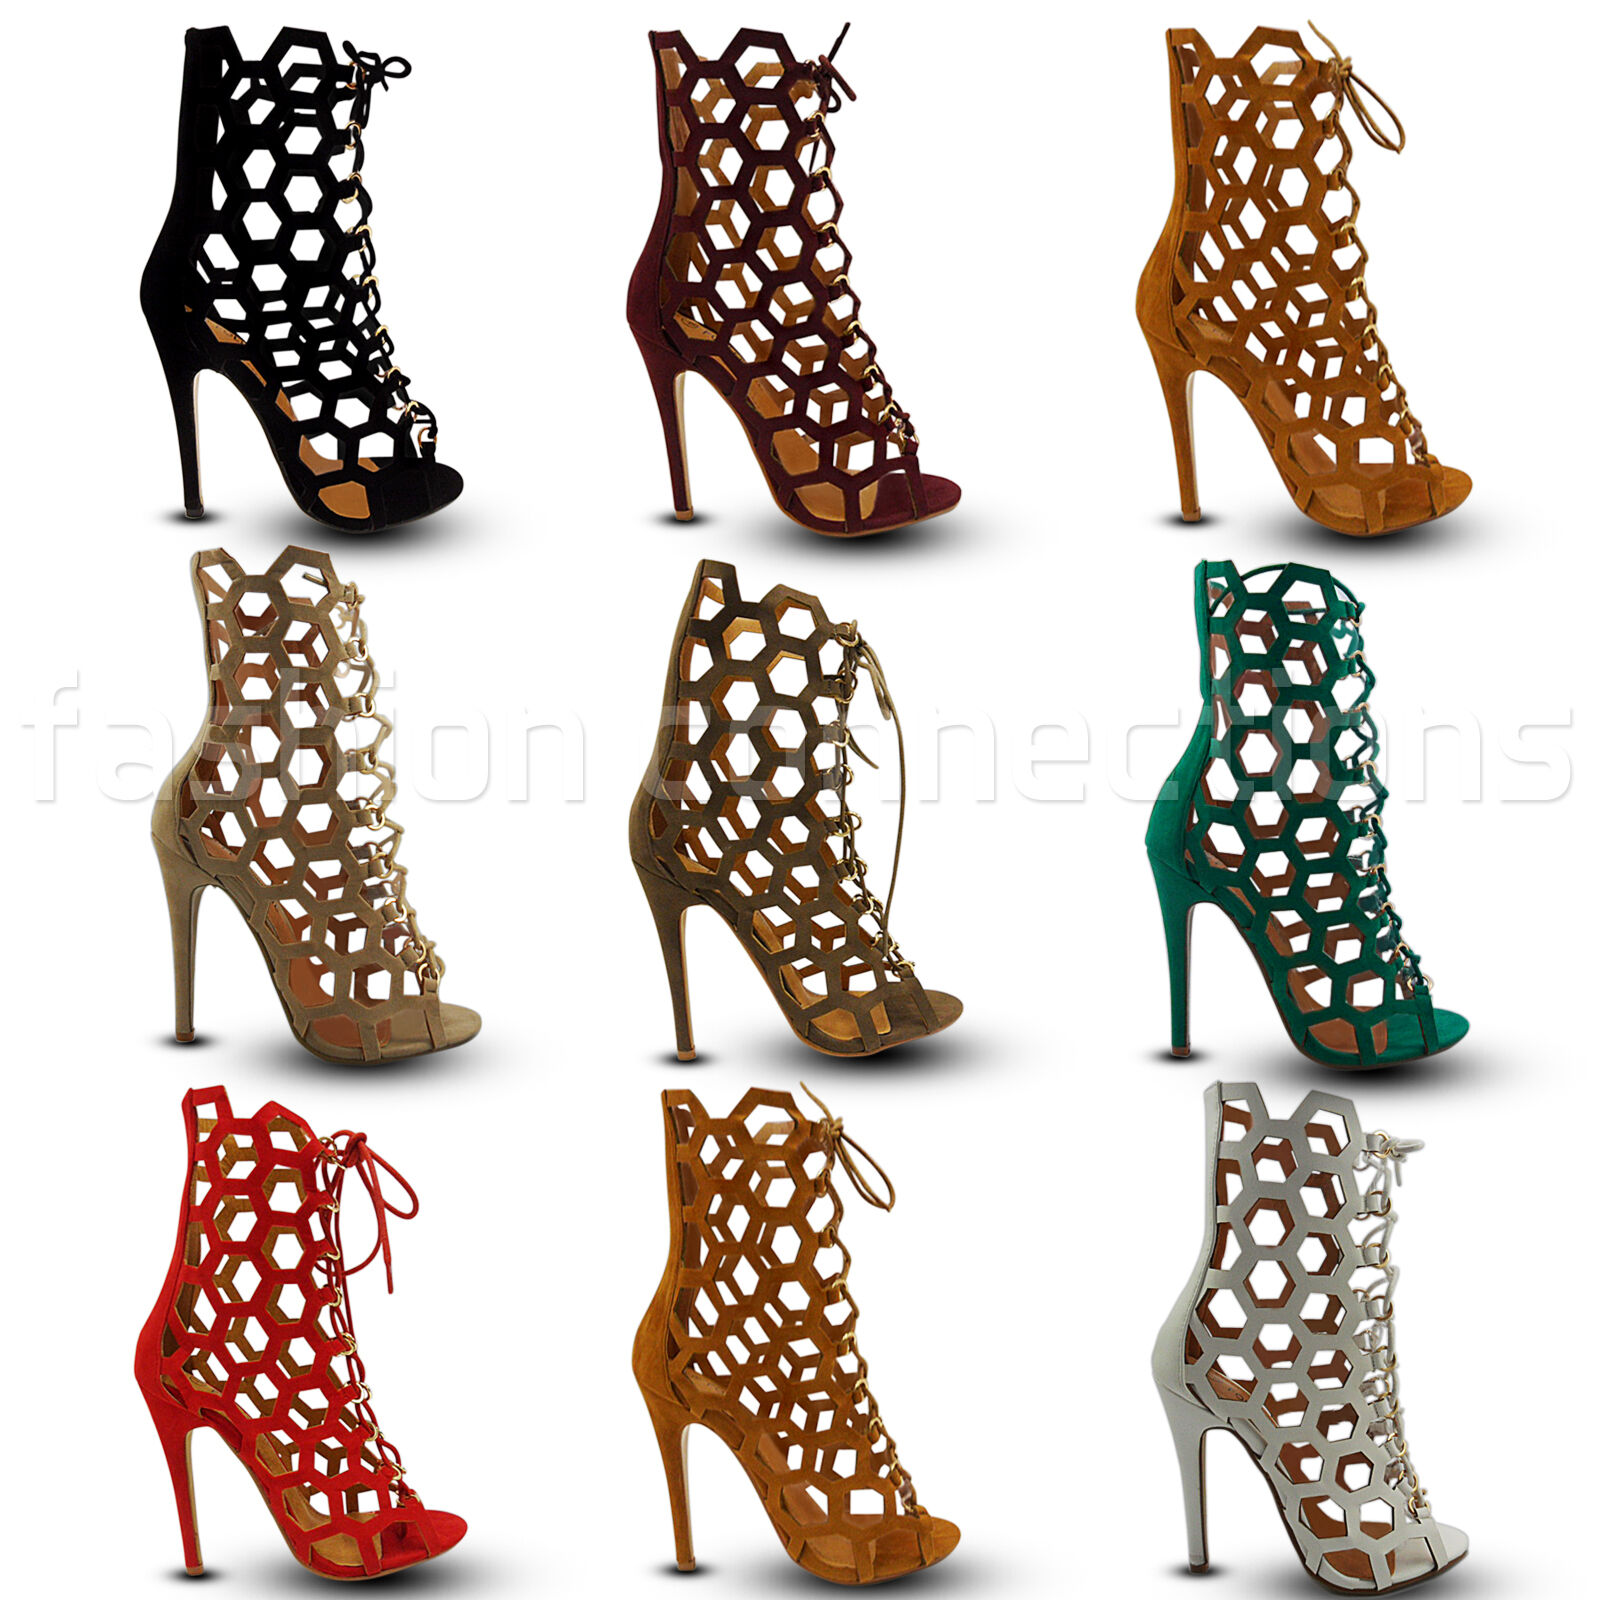 NEW LADIES HIGH STILETTO HEEL CUT OUT LACE UP OPEN TOE ANKLE BOOTS SHOES SIZE